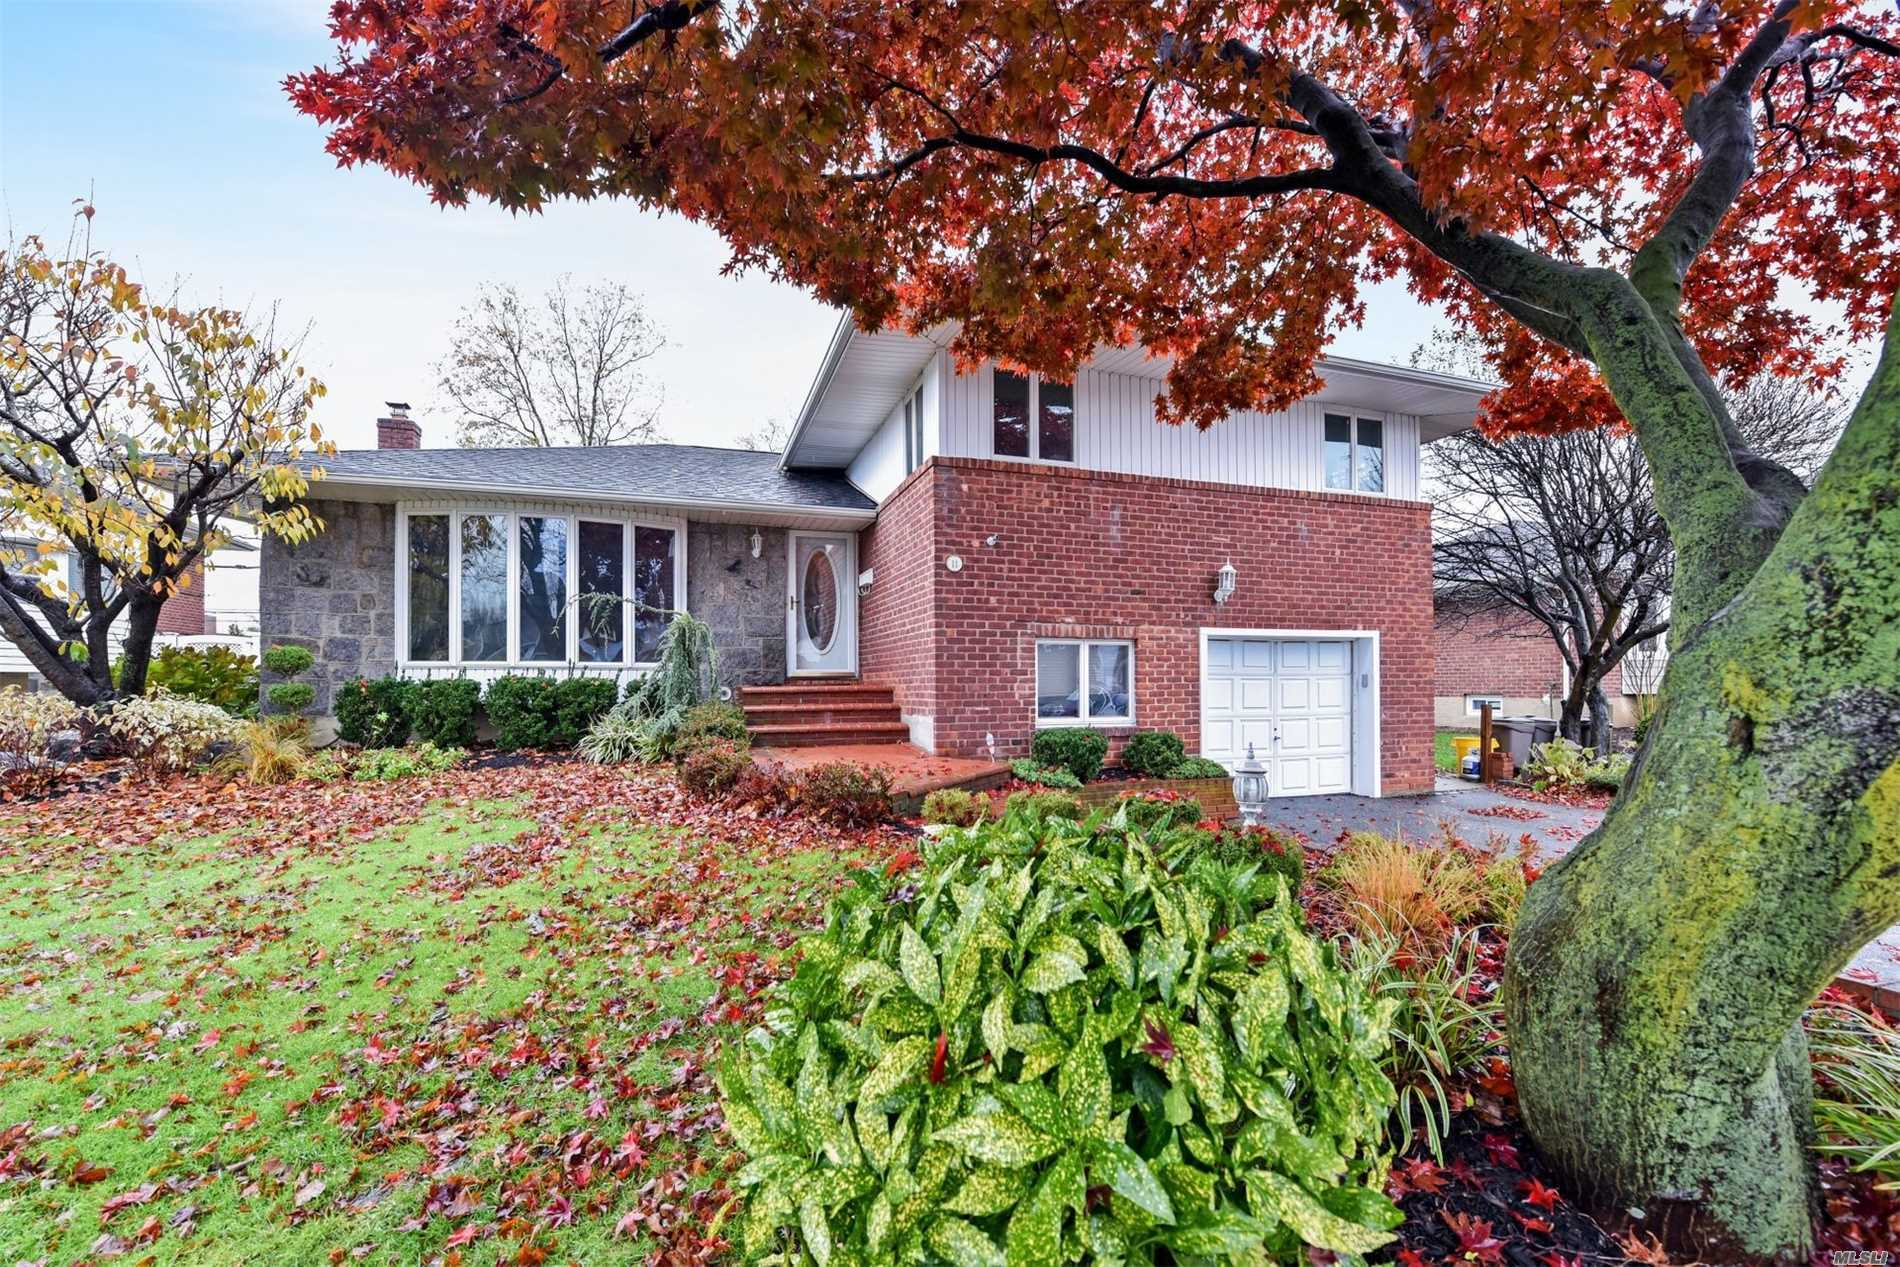 Larger Split, New Master Bath, Hardwood Floors Thru Out, Eat In Kitchen With Granite Counters, New Stainless Steel Oven And Dishwasher, Paneled Fridge, Crown Molding, Newer Roof. Gas Fireplace And Dryer. Can Convert Heat To Gas. Low Taxes. Syosset Schools.